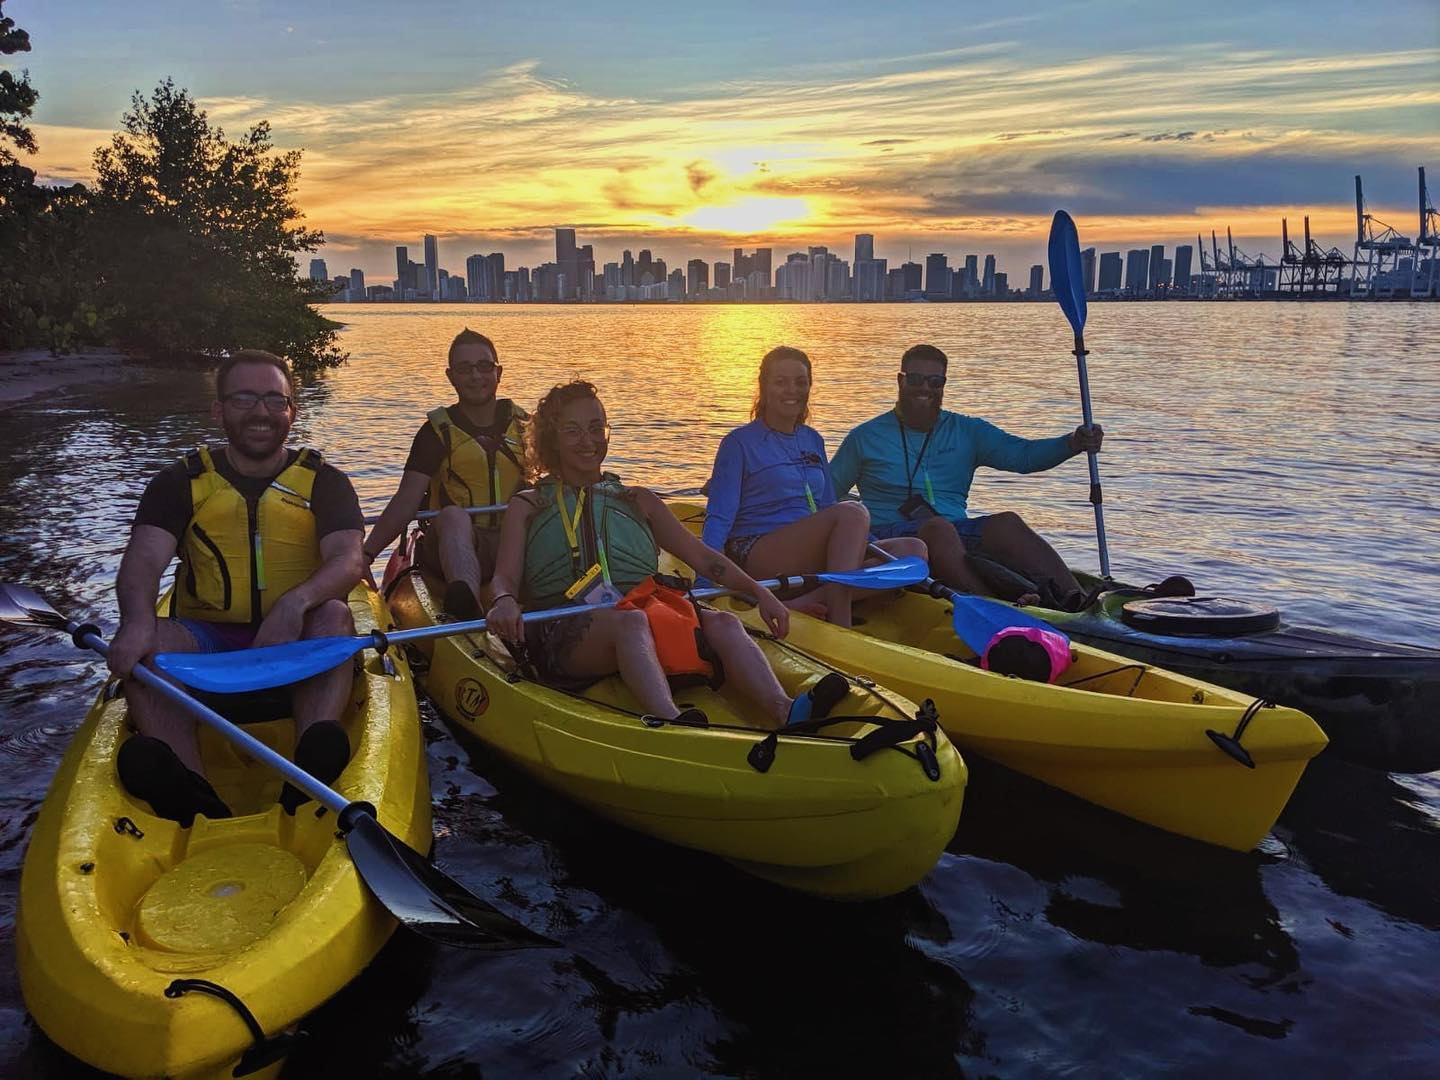 Sunset Kayak & Paddleboard Adventure Tours - June 13th, 19th, and 27th